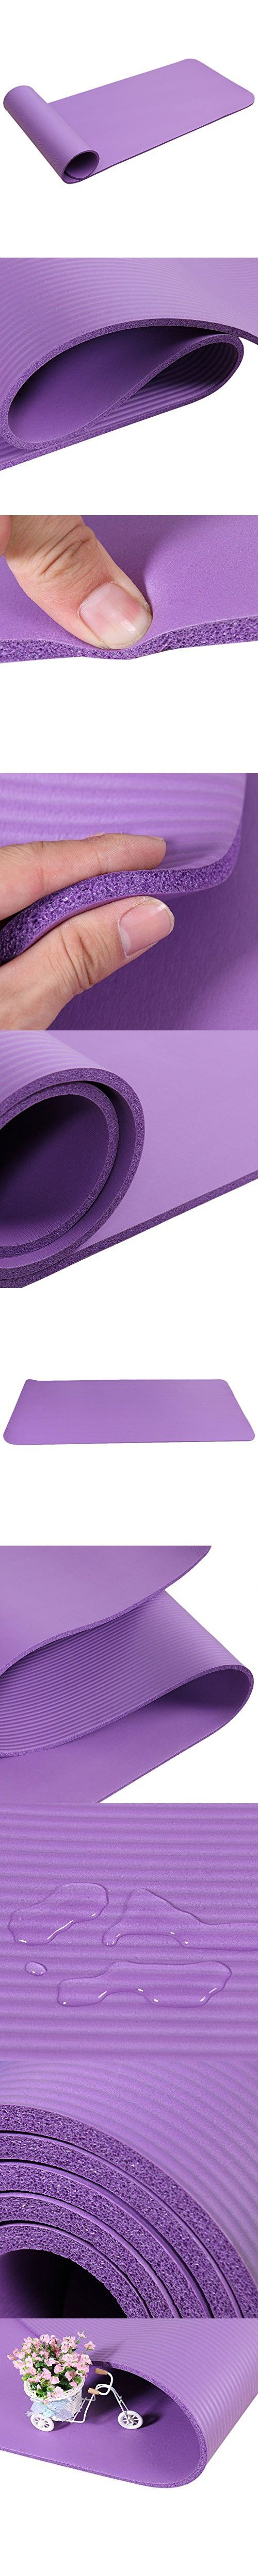 8-15mm Thickened NBR Pure Color Anti-skid Non-slip Yoga Mat Health Lose Weight Fitness Durable Thick Exercise Pad (Purple, 15mm)